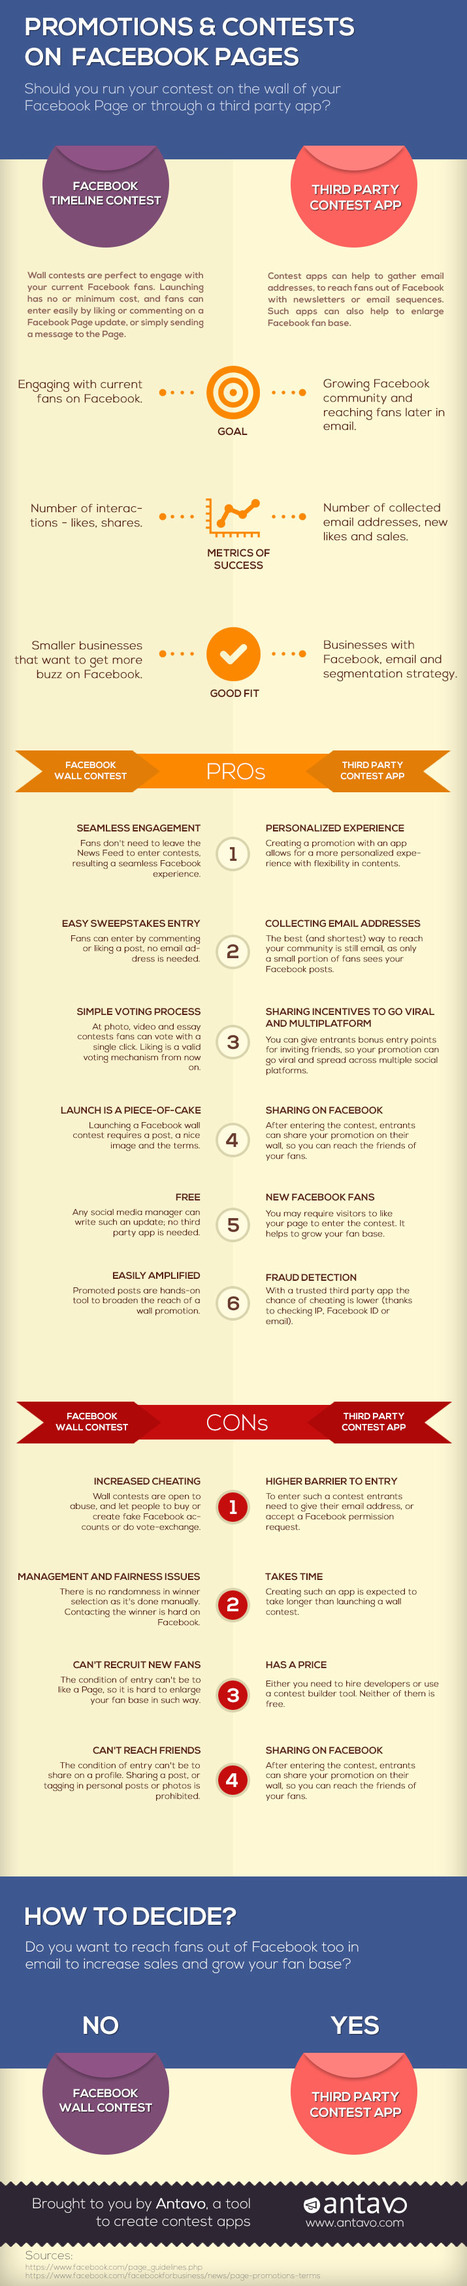 INFOGRAPHIC: Pros And Cons Of Using Third-Party Apps To Create Facebook Promotions   digital marketing strategy   Scoop.it